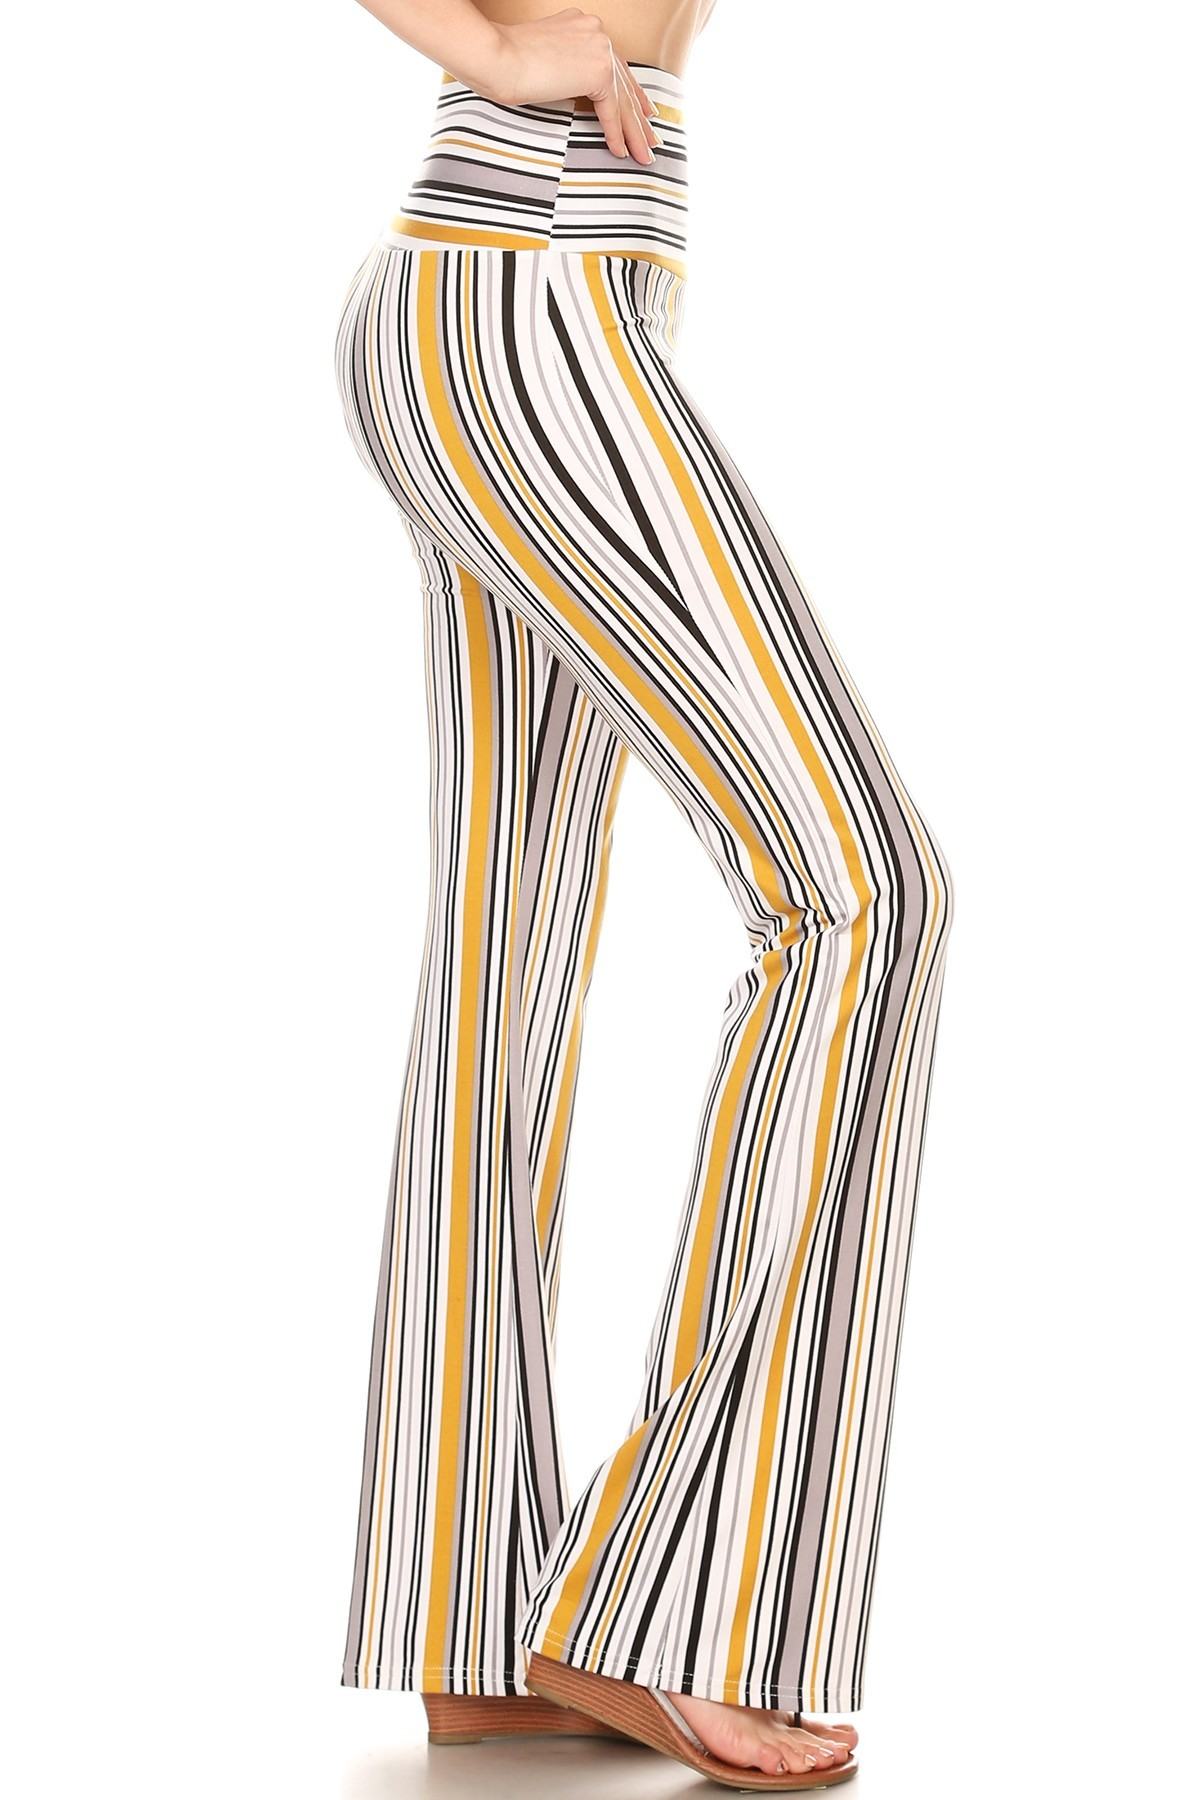 WHITE/MUSTARD/BLACK STRIPE PRINT HIGH WAIST FLARE PANTS#8FP06-SP24